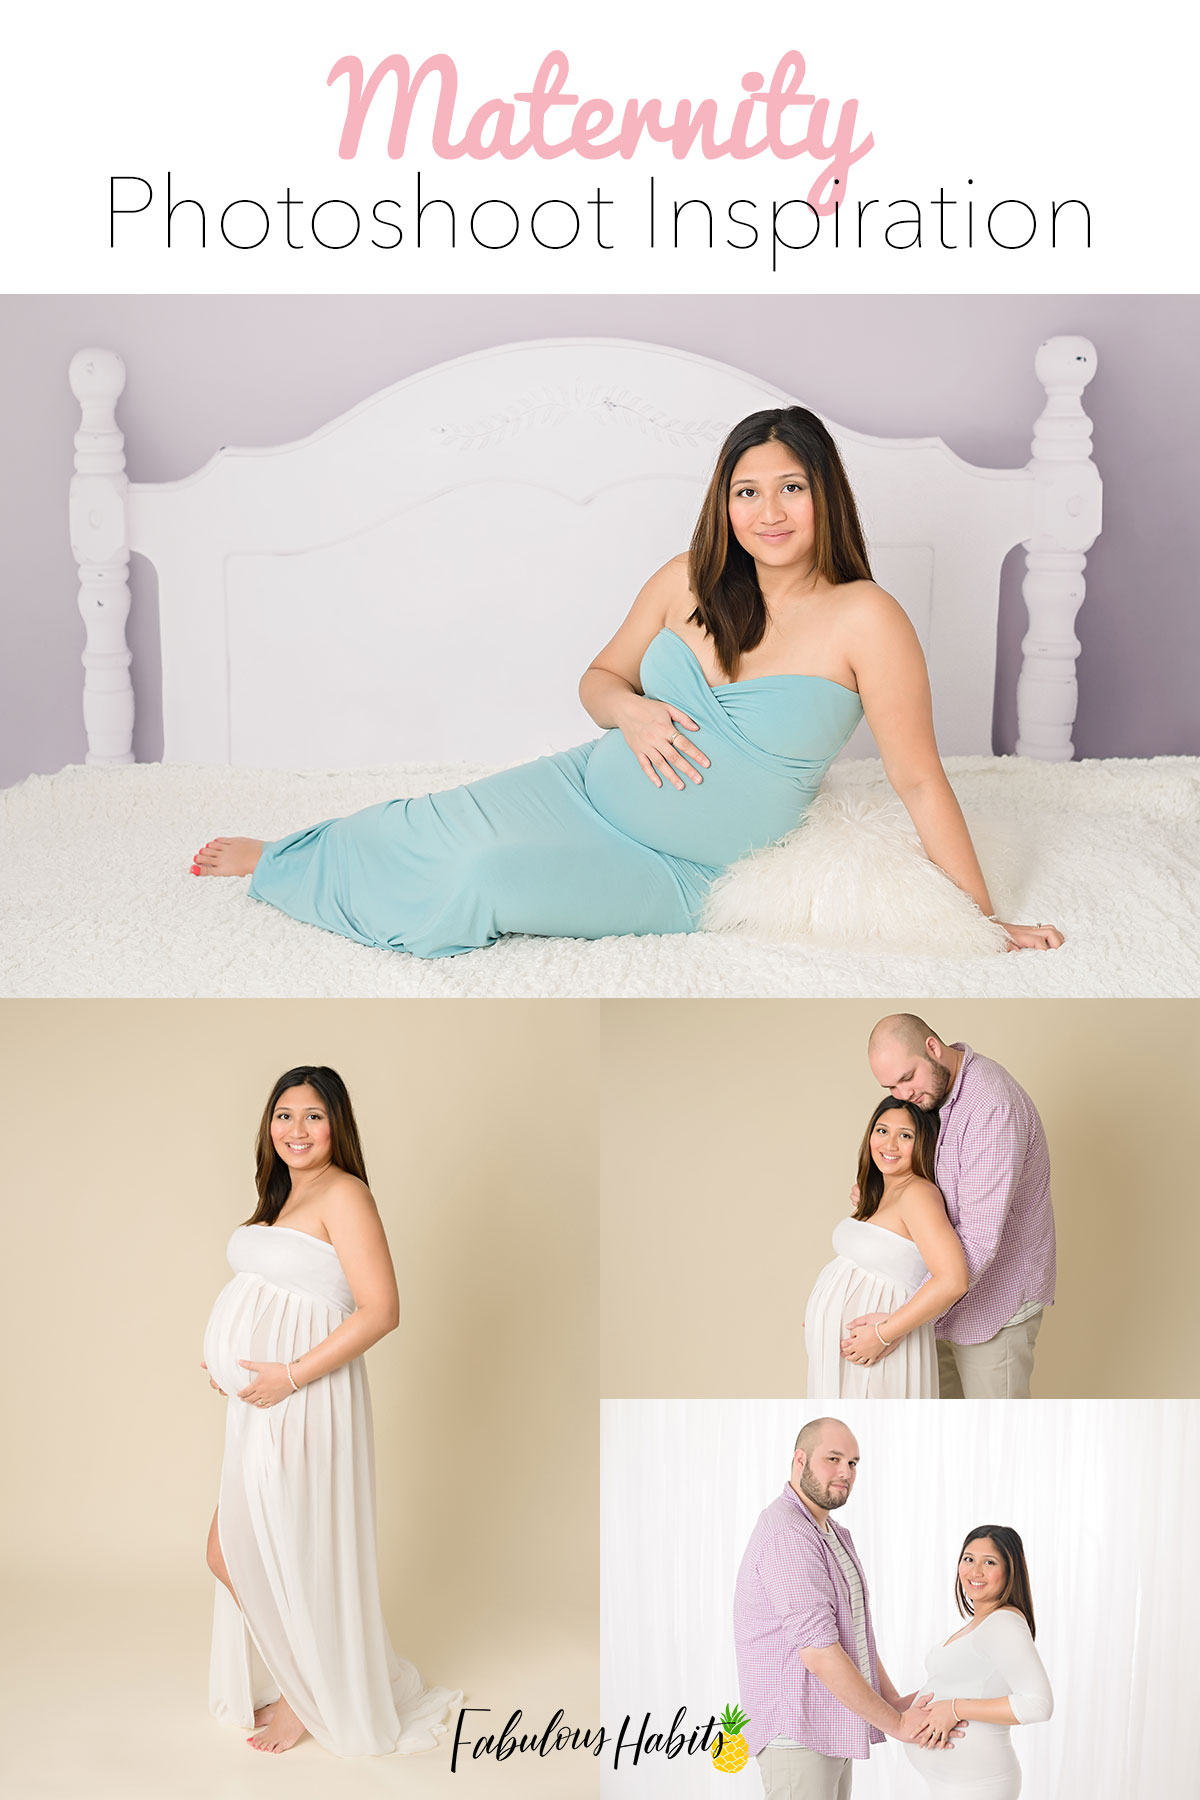 Pose ideas for your upcoming maternity photoshoot - capture the best moments with your fam!